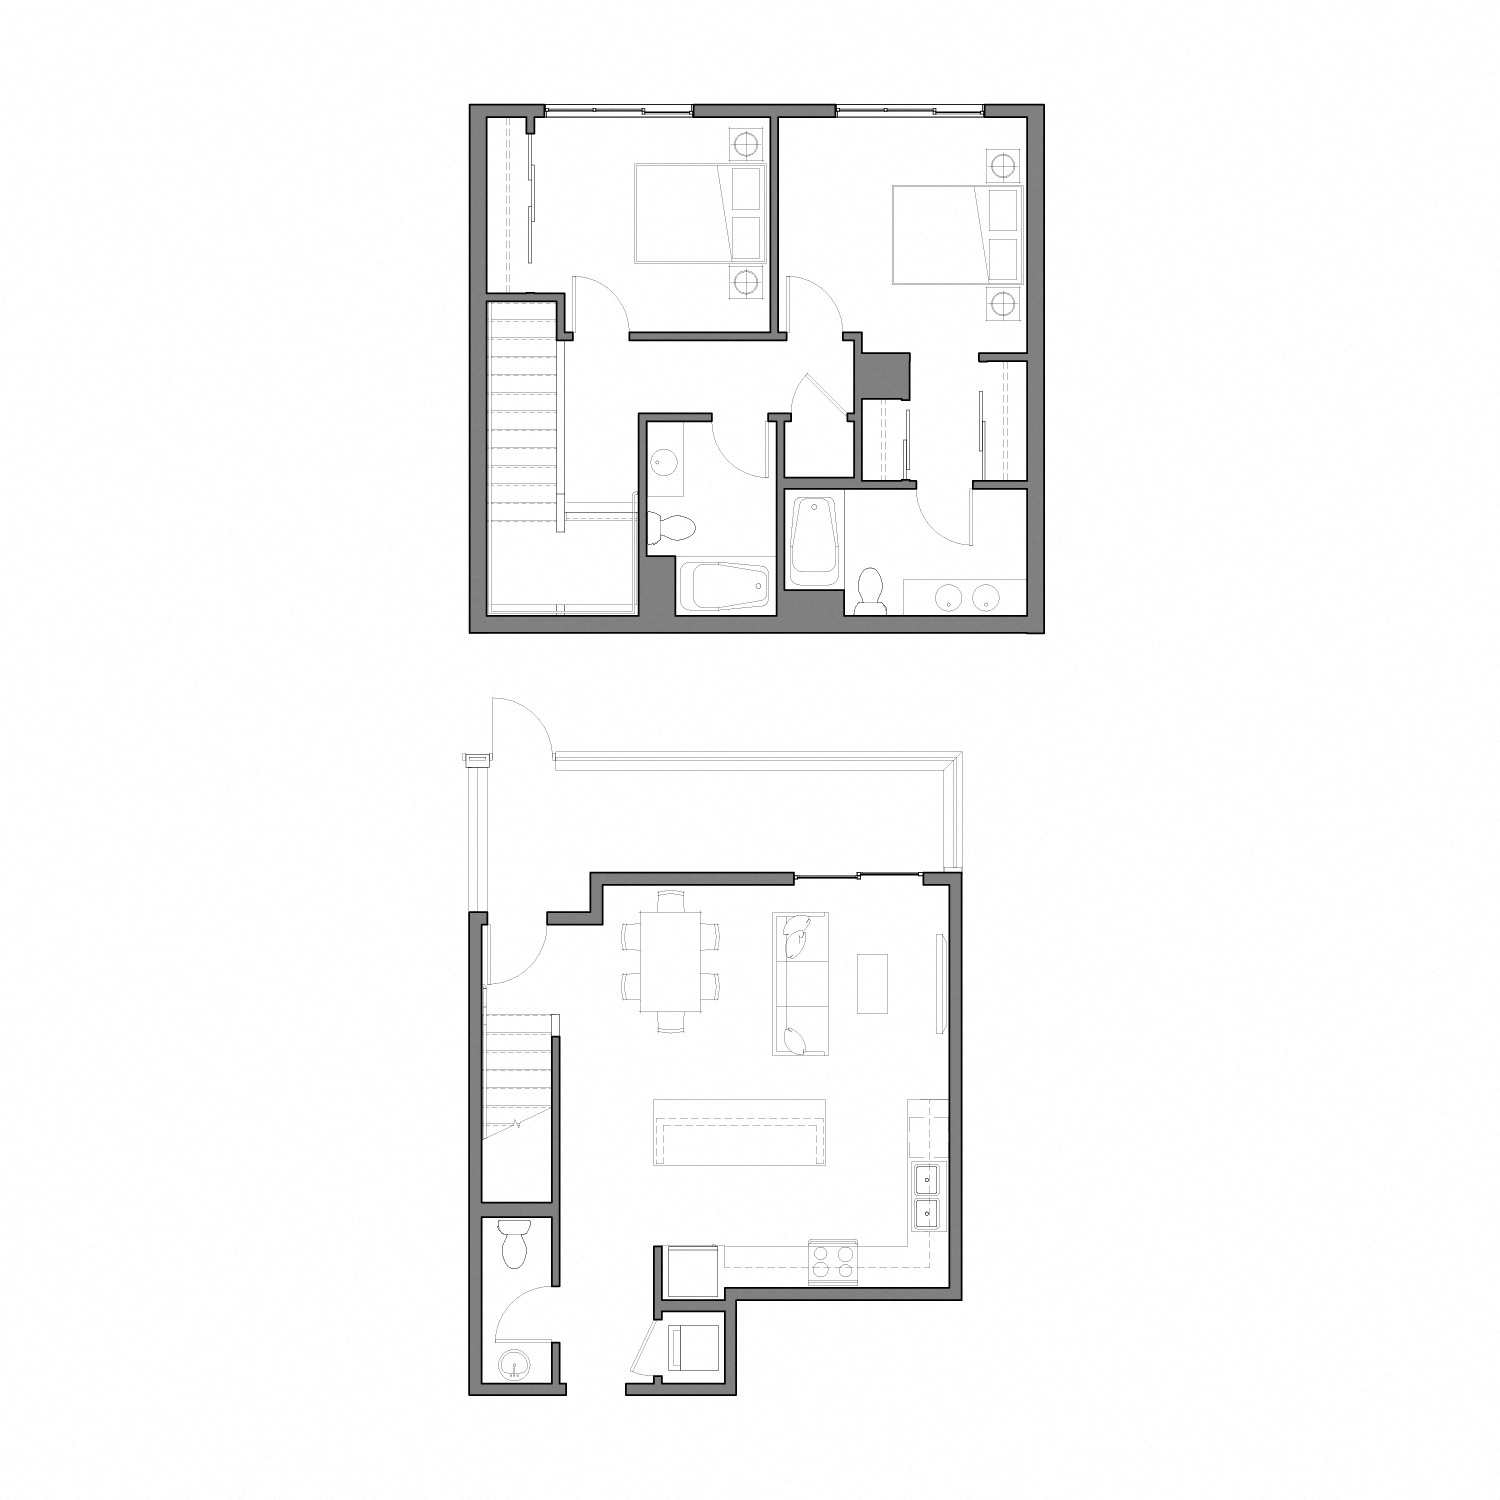 Floor plan diagram for a two story apartment with two bedrooms, two and a half bathrooms, an open kitchen dining and living space, and a patio